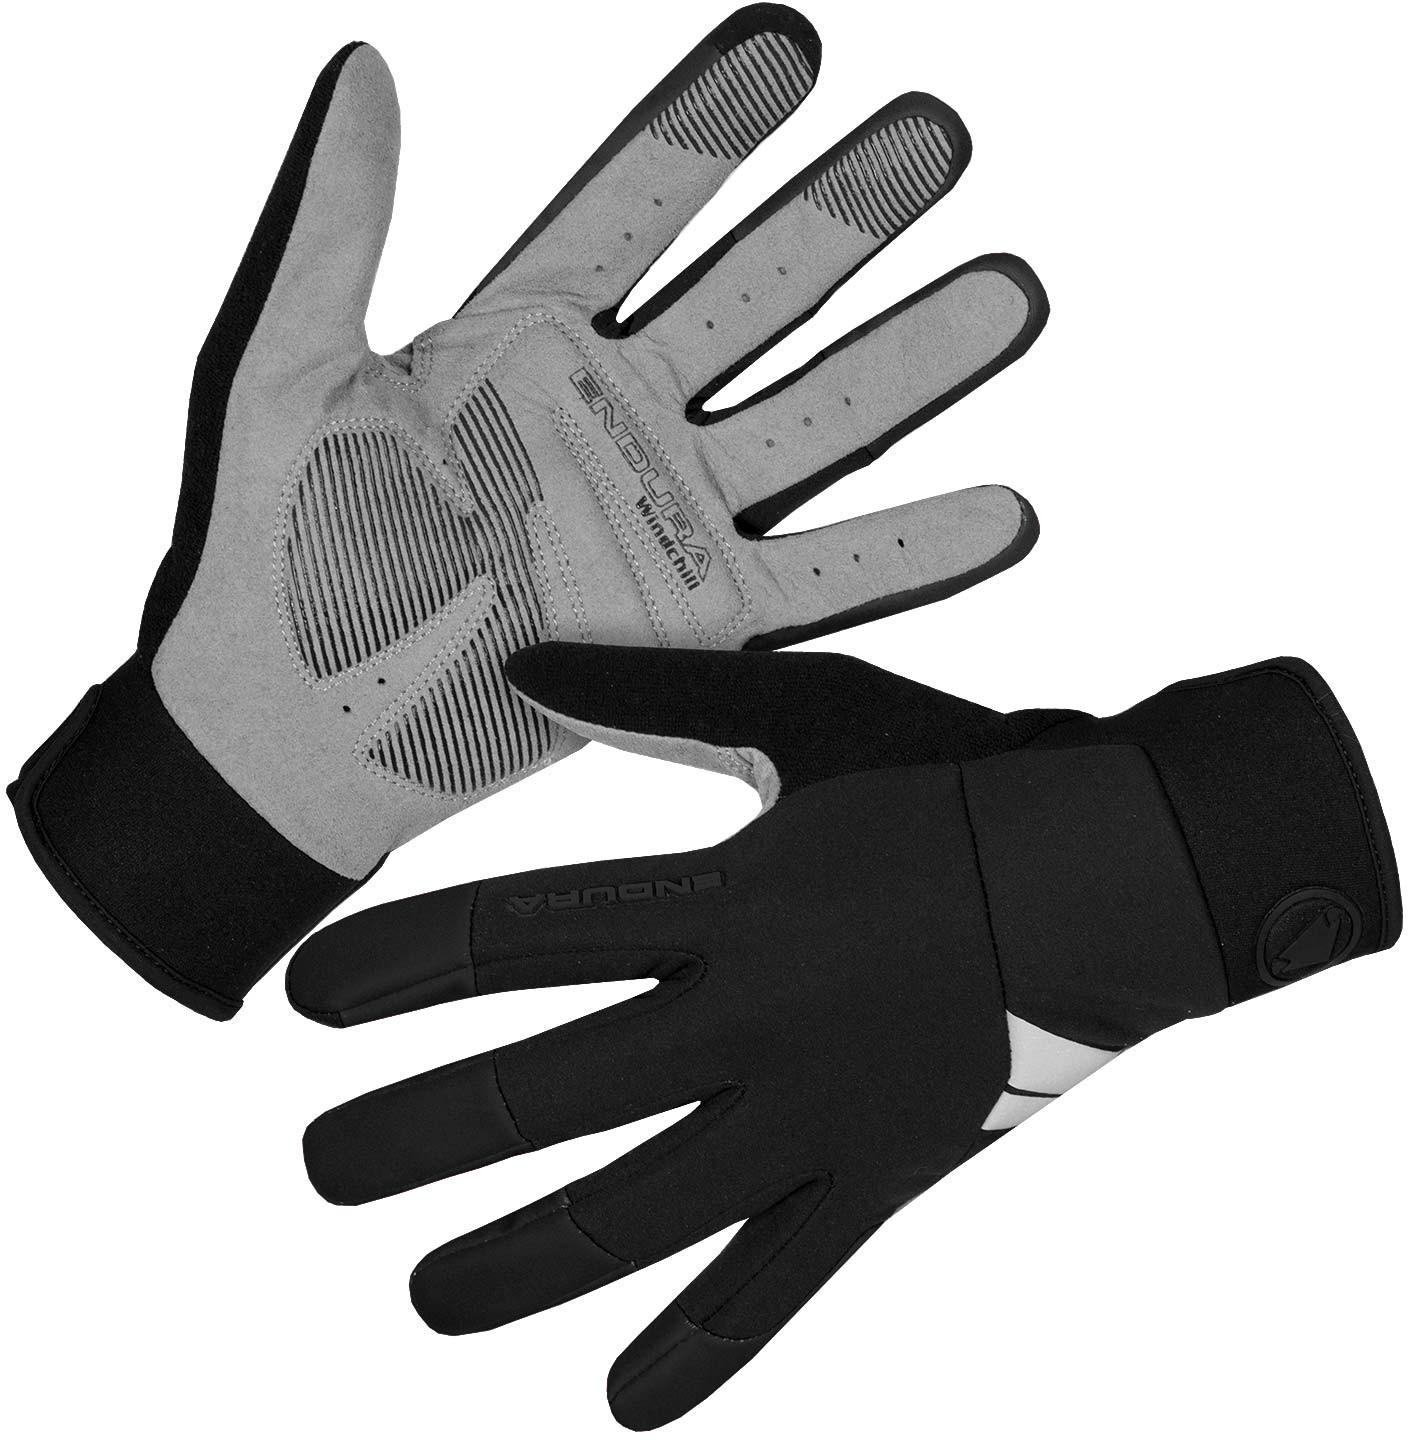 Finish Line Mechanic Grip Gloves L/xl Black